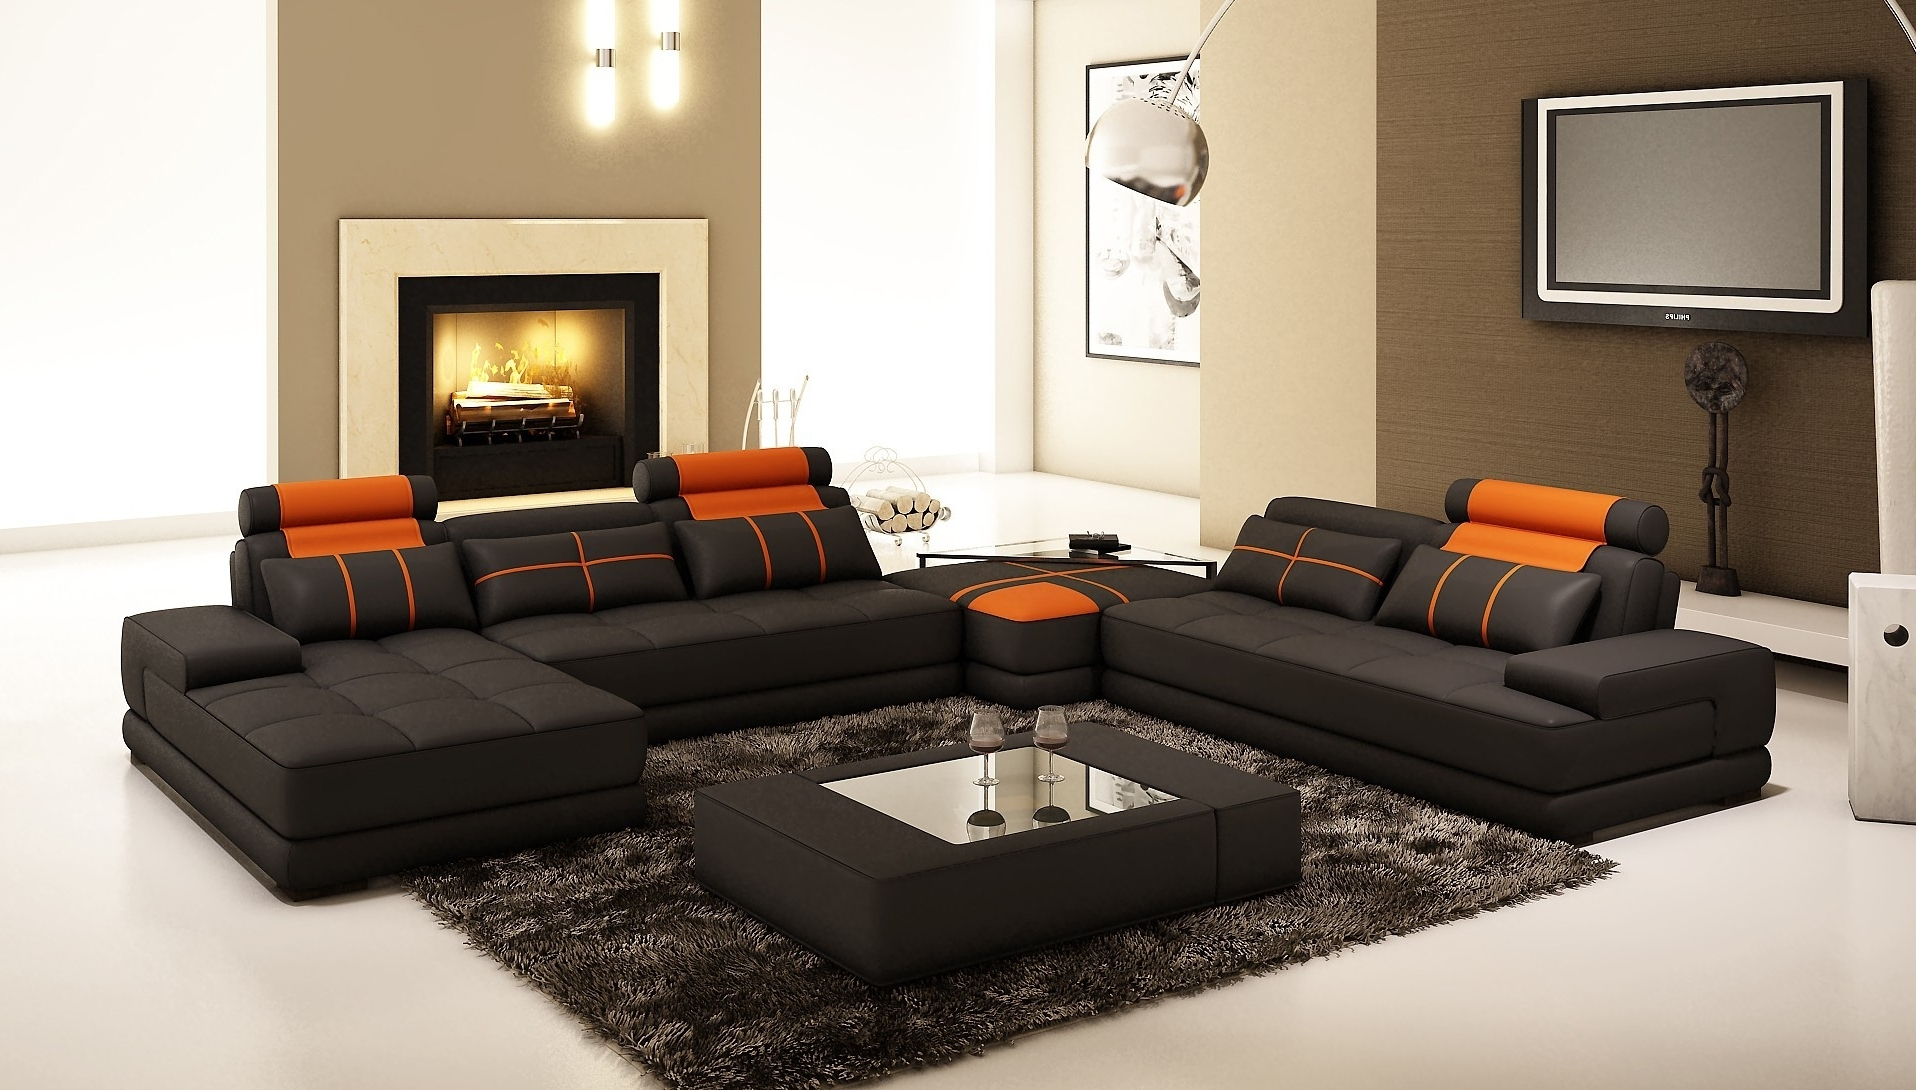 Well Known Furniture : Sectional Sofa 102 X 102 Corner Couch Black Recliner Pertaining To 102X102 Sectional Sofas (View 14 of 15)